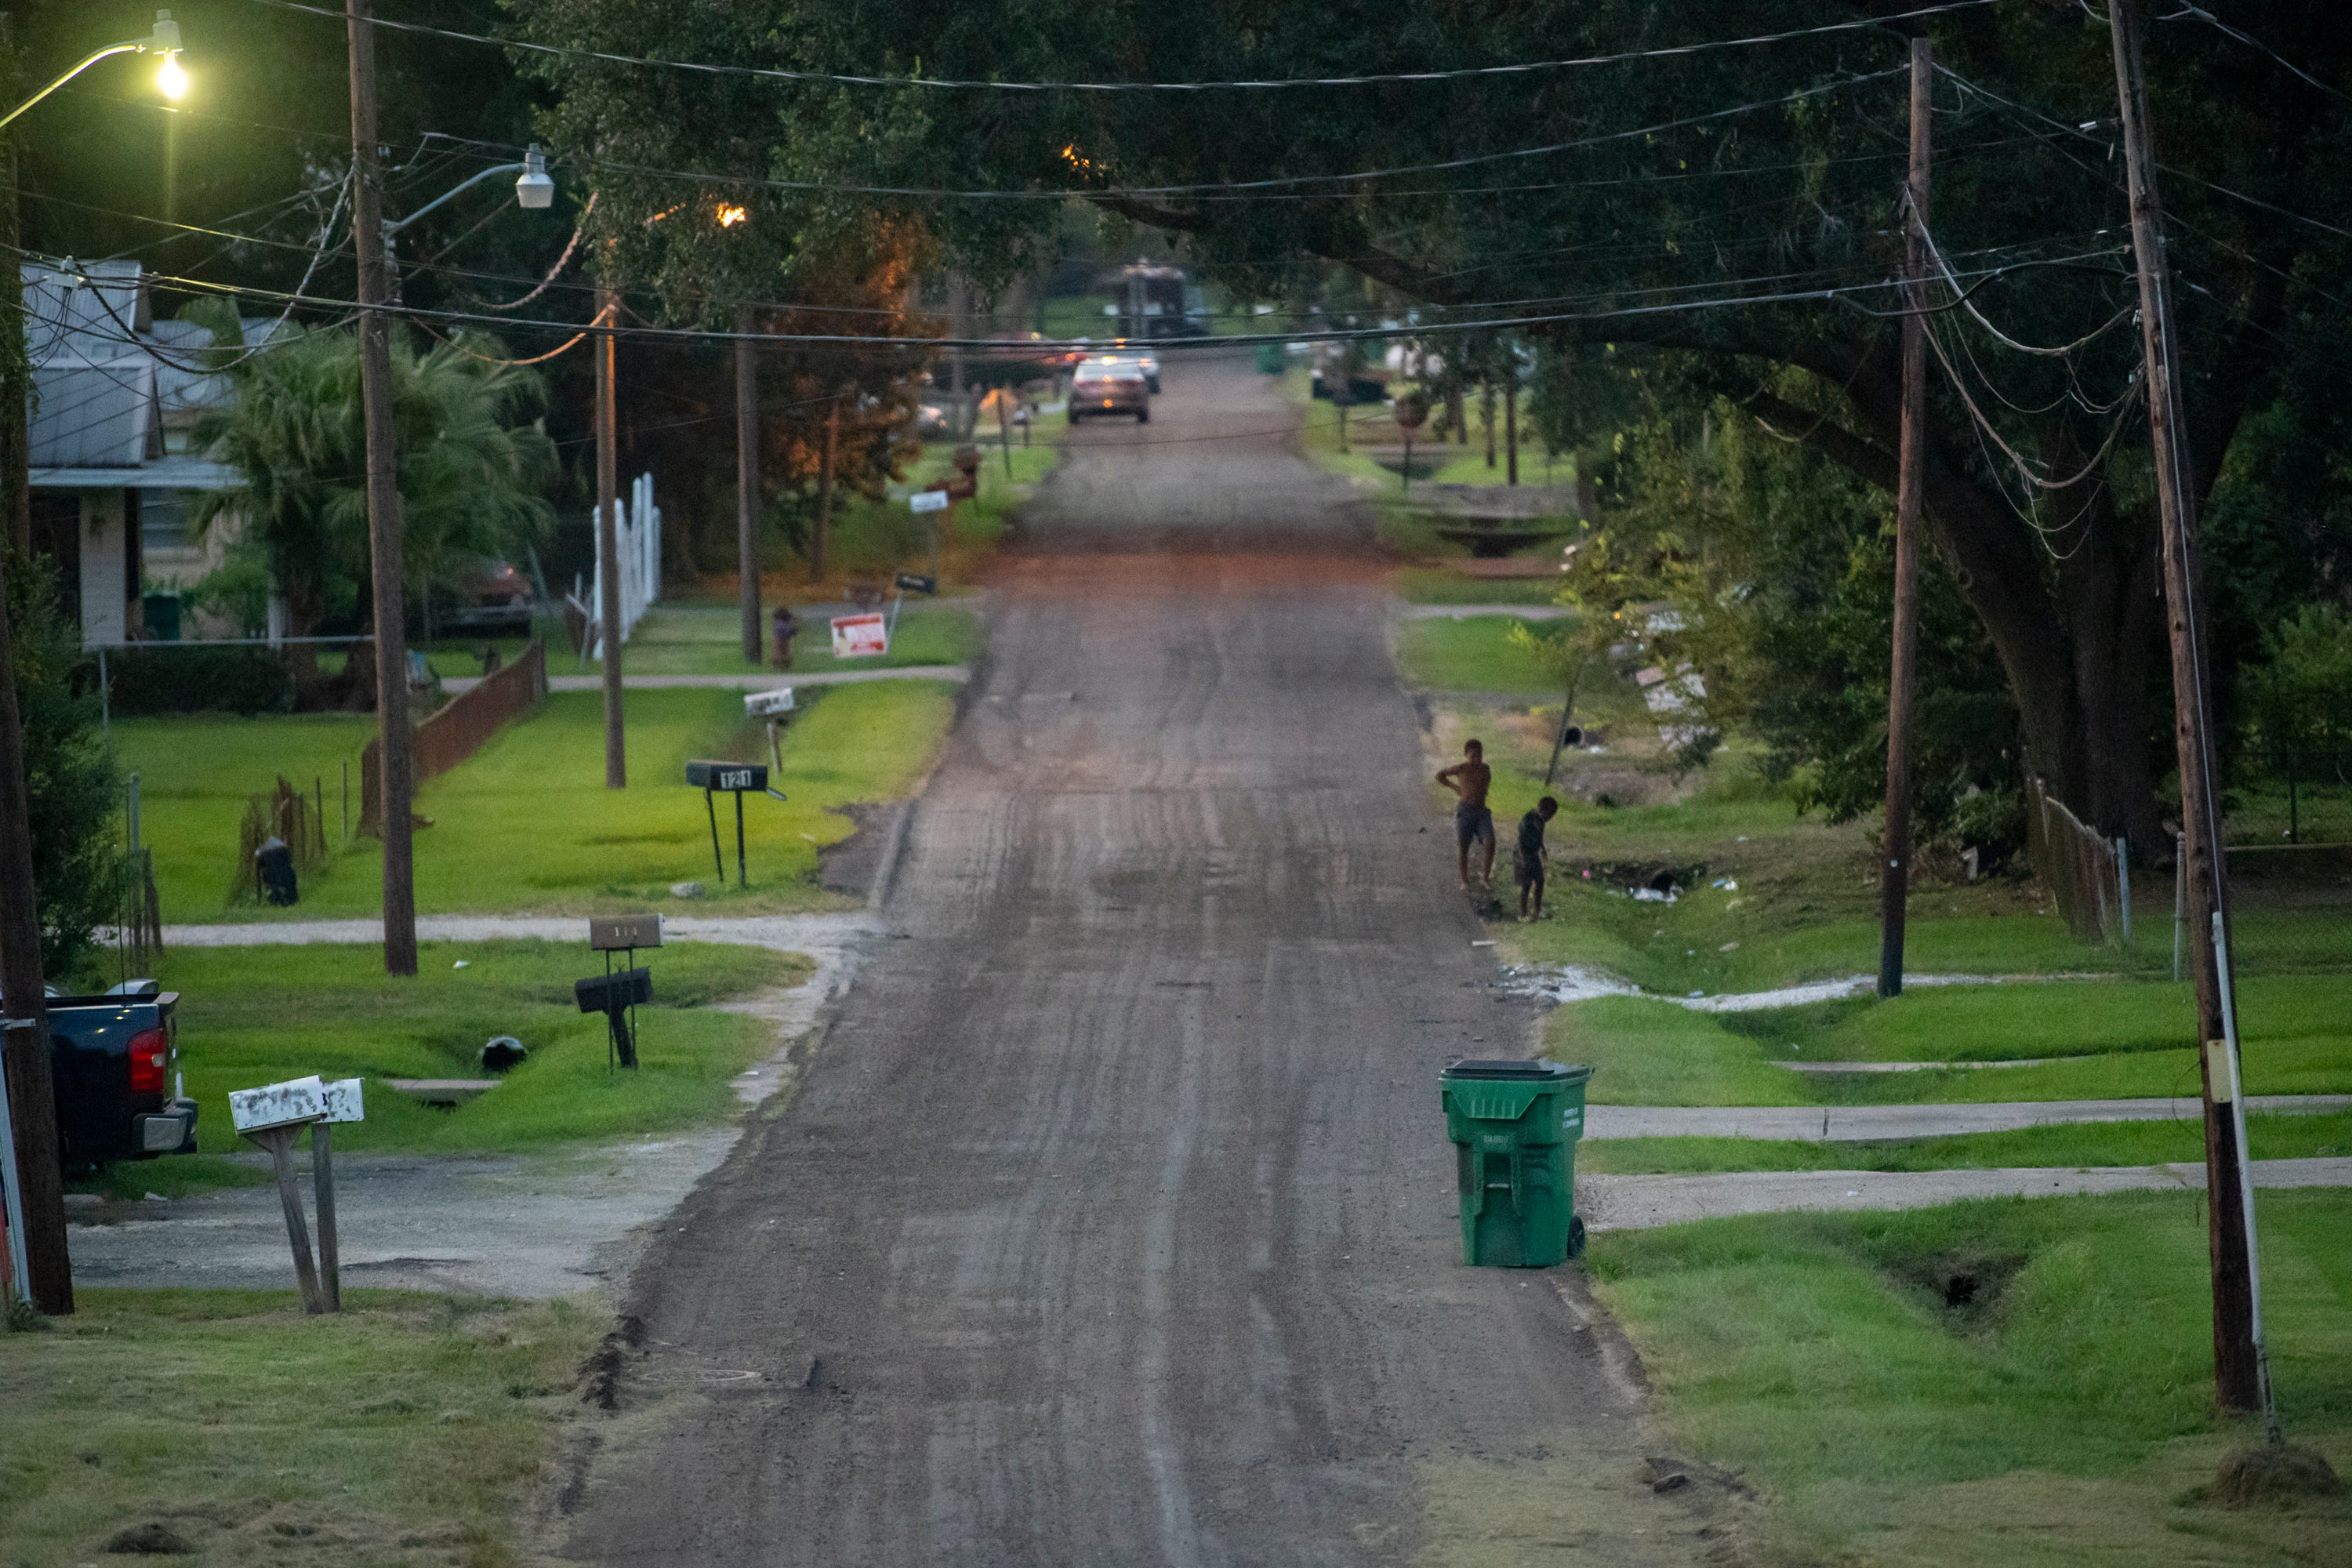 Children play in the residential streets of Reserve, La., just down the road from the Denka Performance Elastomer neoprene plant.